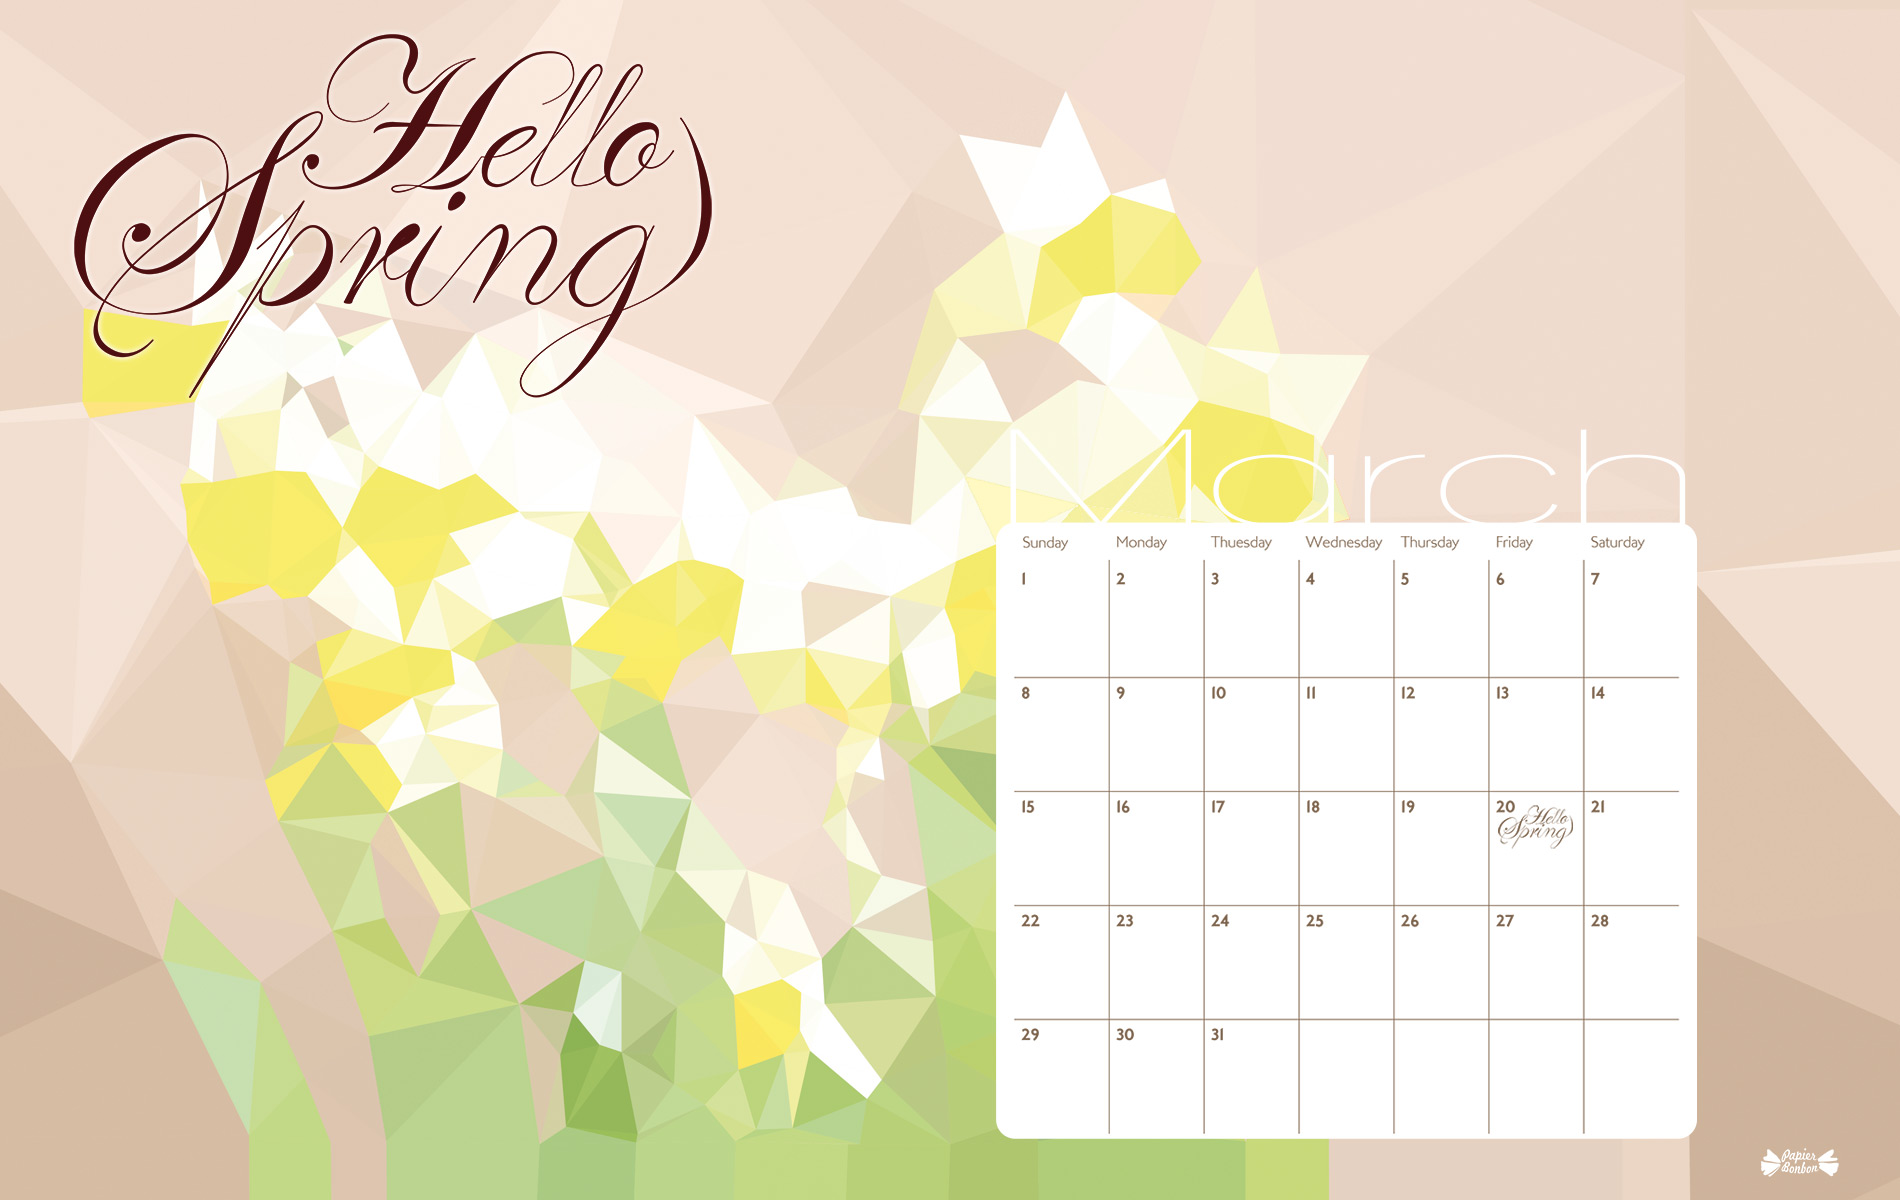 March 2015 calendar printable   Hello Spring   Papier Bonbon 1900x1200